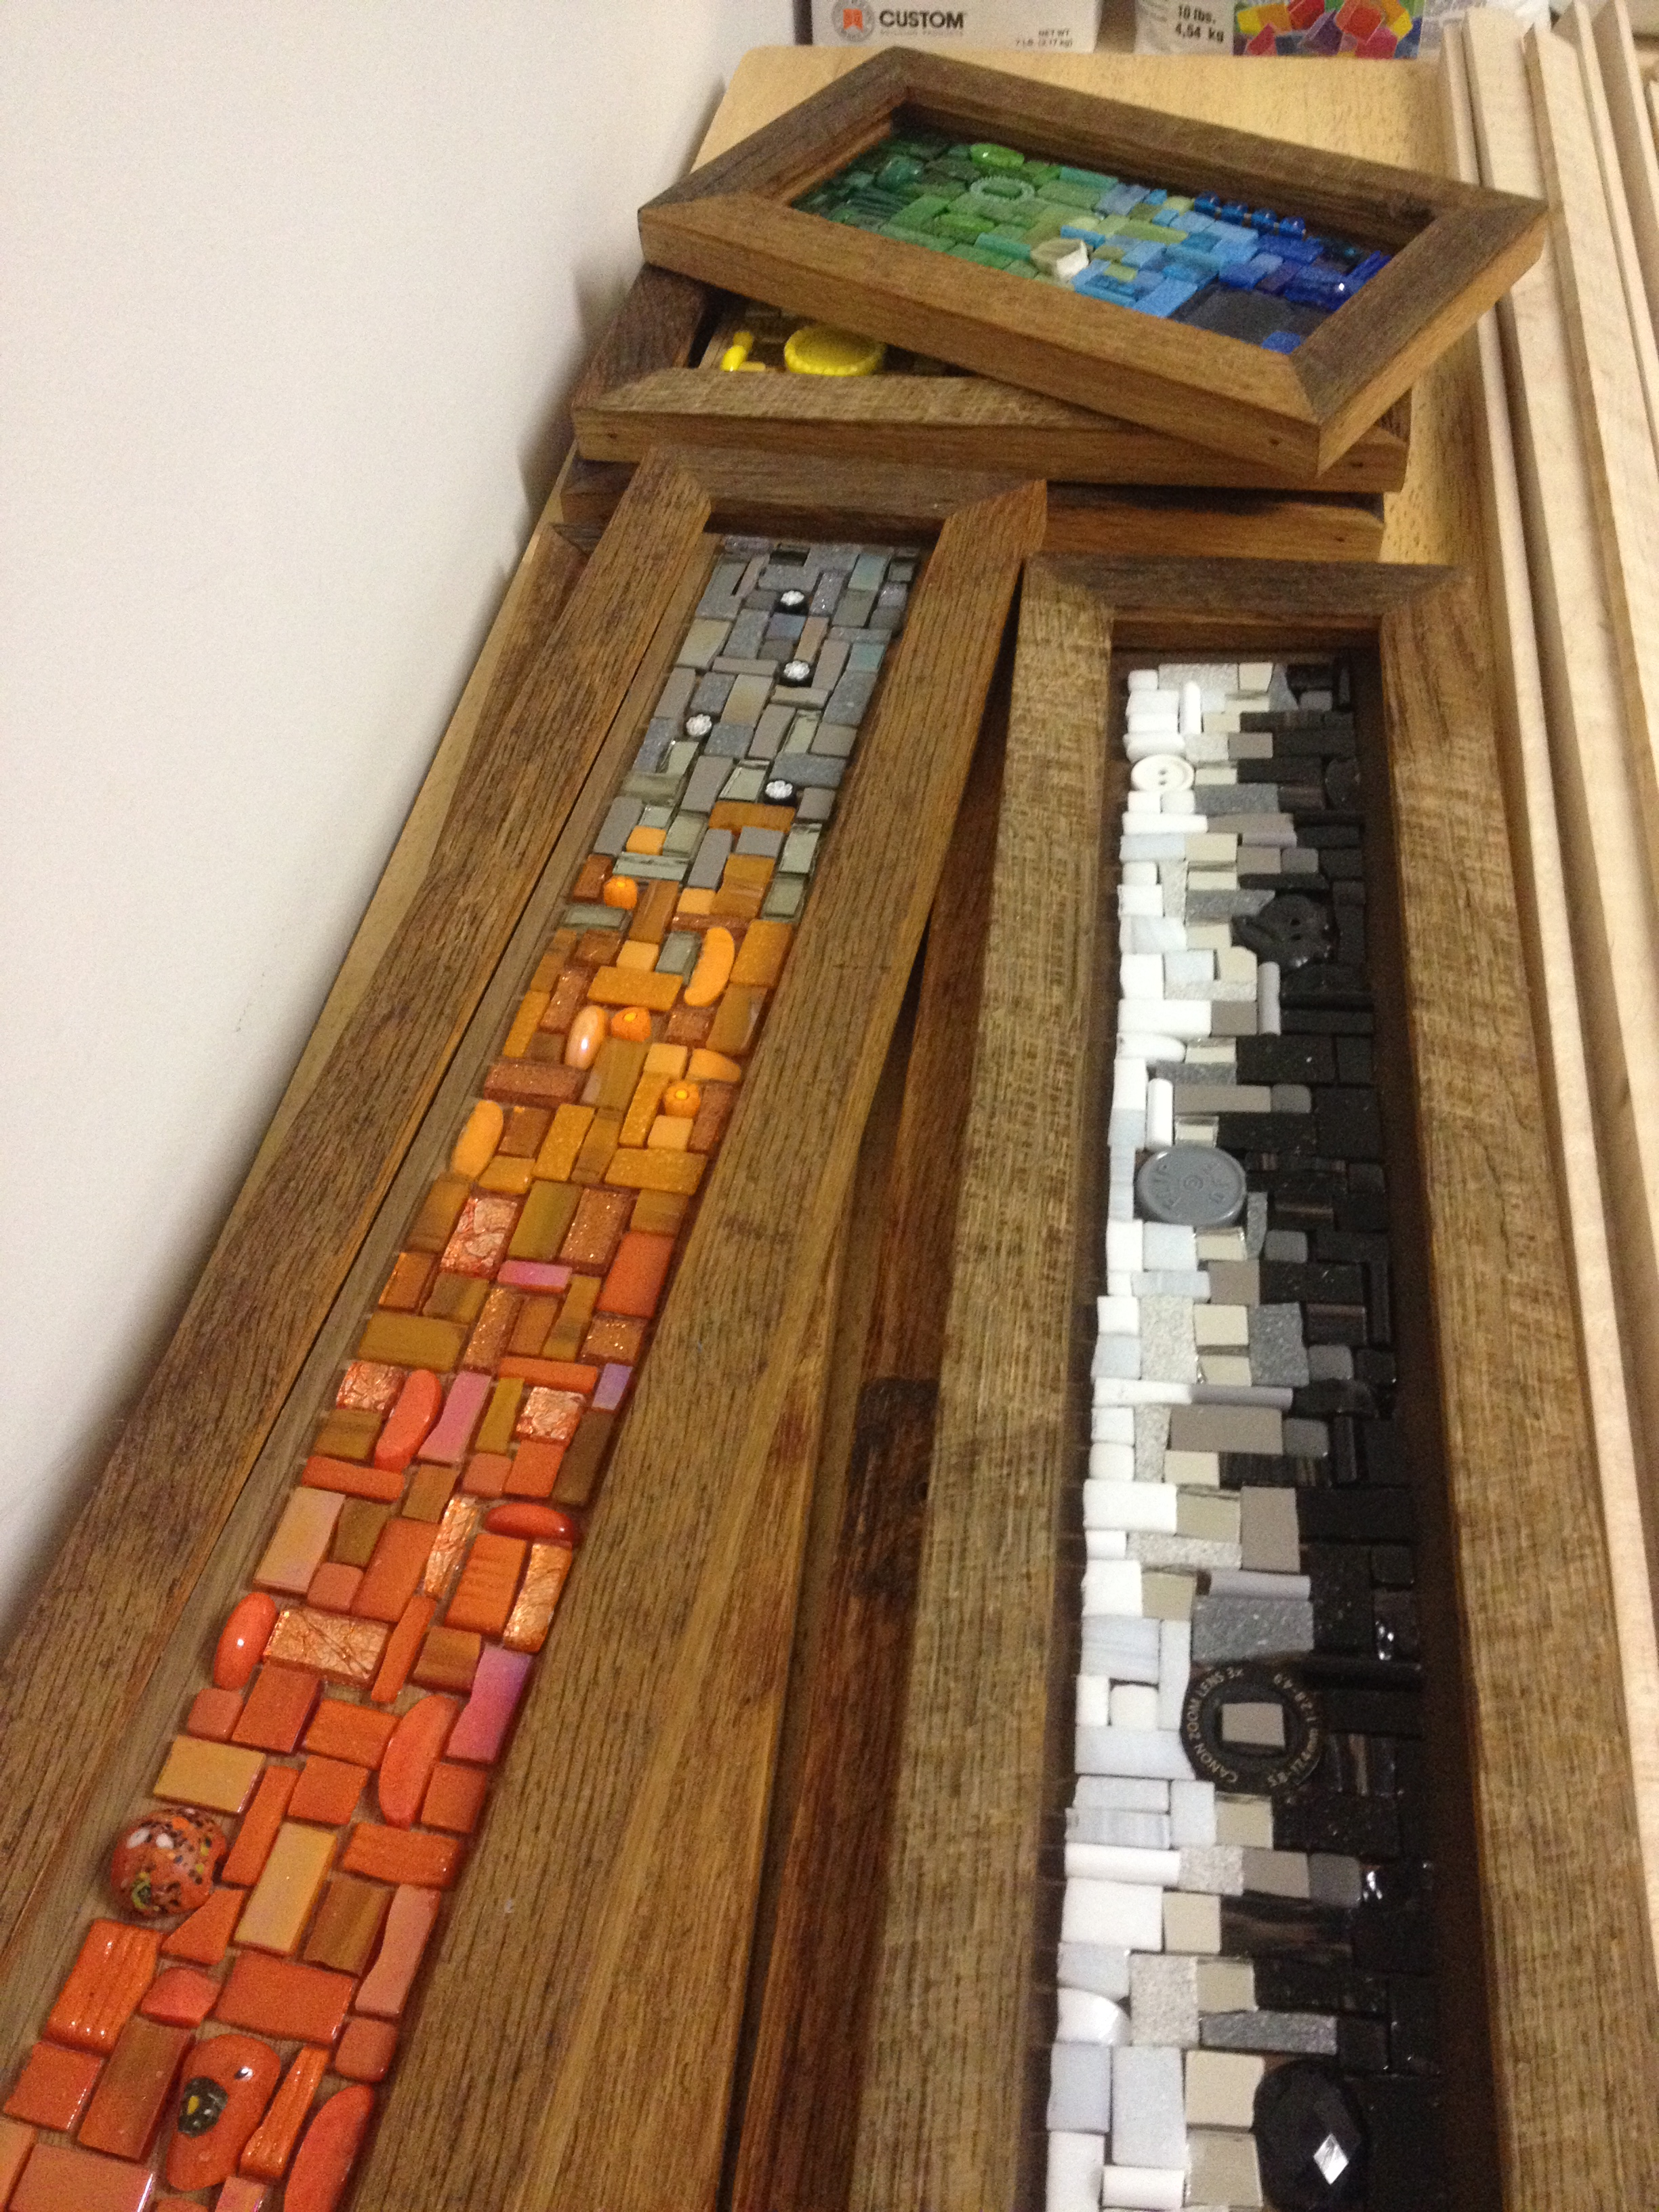 Mosaics-to-be-grouted-PH2014